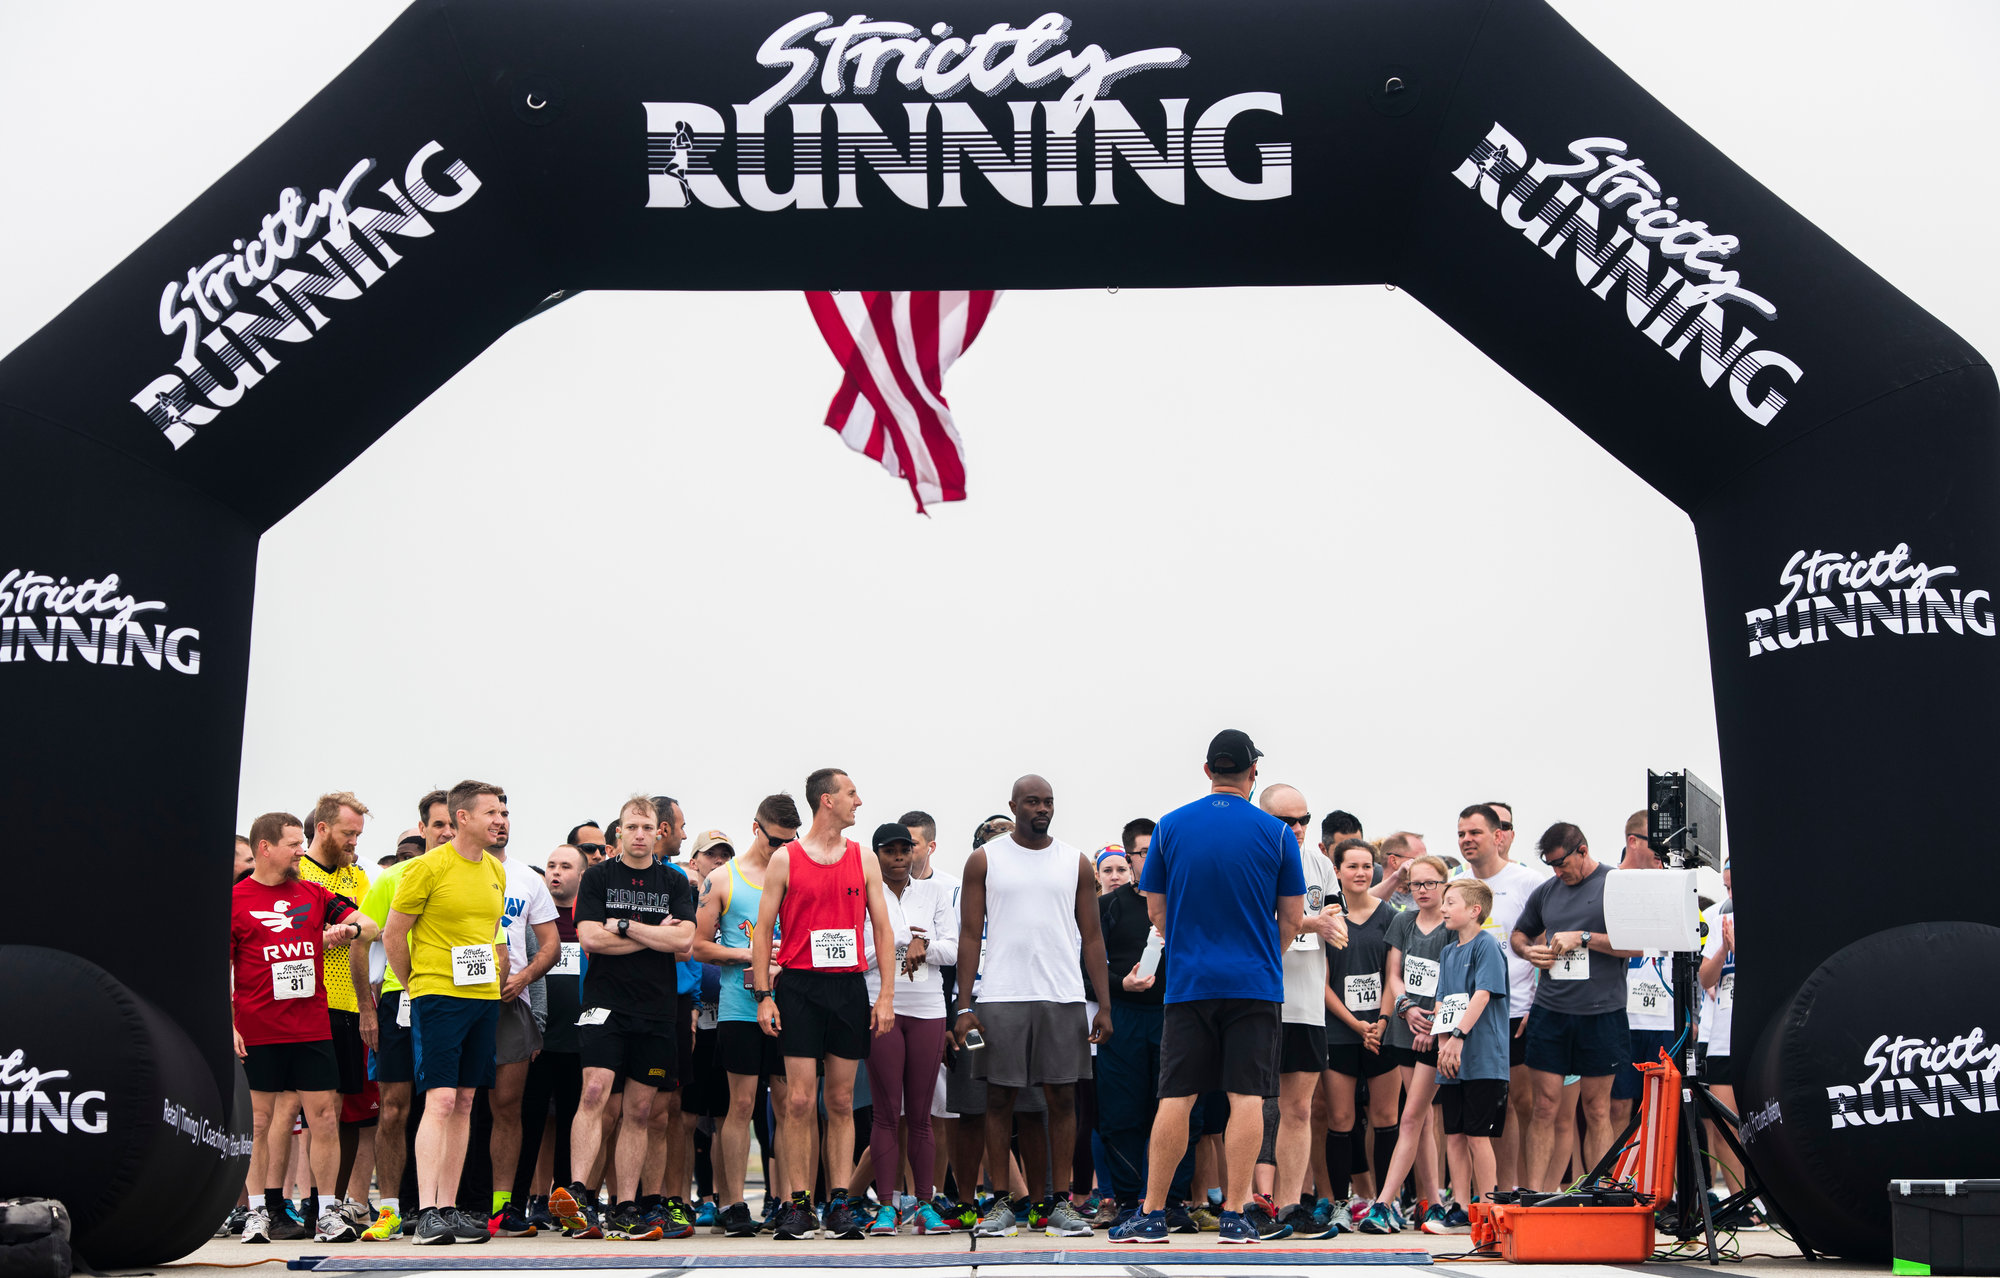 PHOTOS BY U.S. AIR FORCE SENIOR AIRMAN CHRISTOPHER MALDONADO / SPECIAL TO THE SUMTER ITEM  Team Shaw and local community members wait at the starting line of a flightline 5K race at Shaw Air Force Base on Saturday. Participants received a running bib, commemorative water bottle and other flightline 5K mementos.